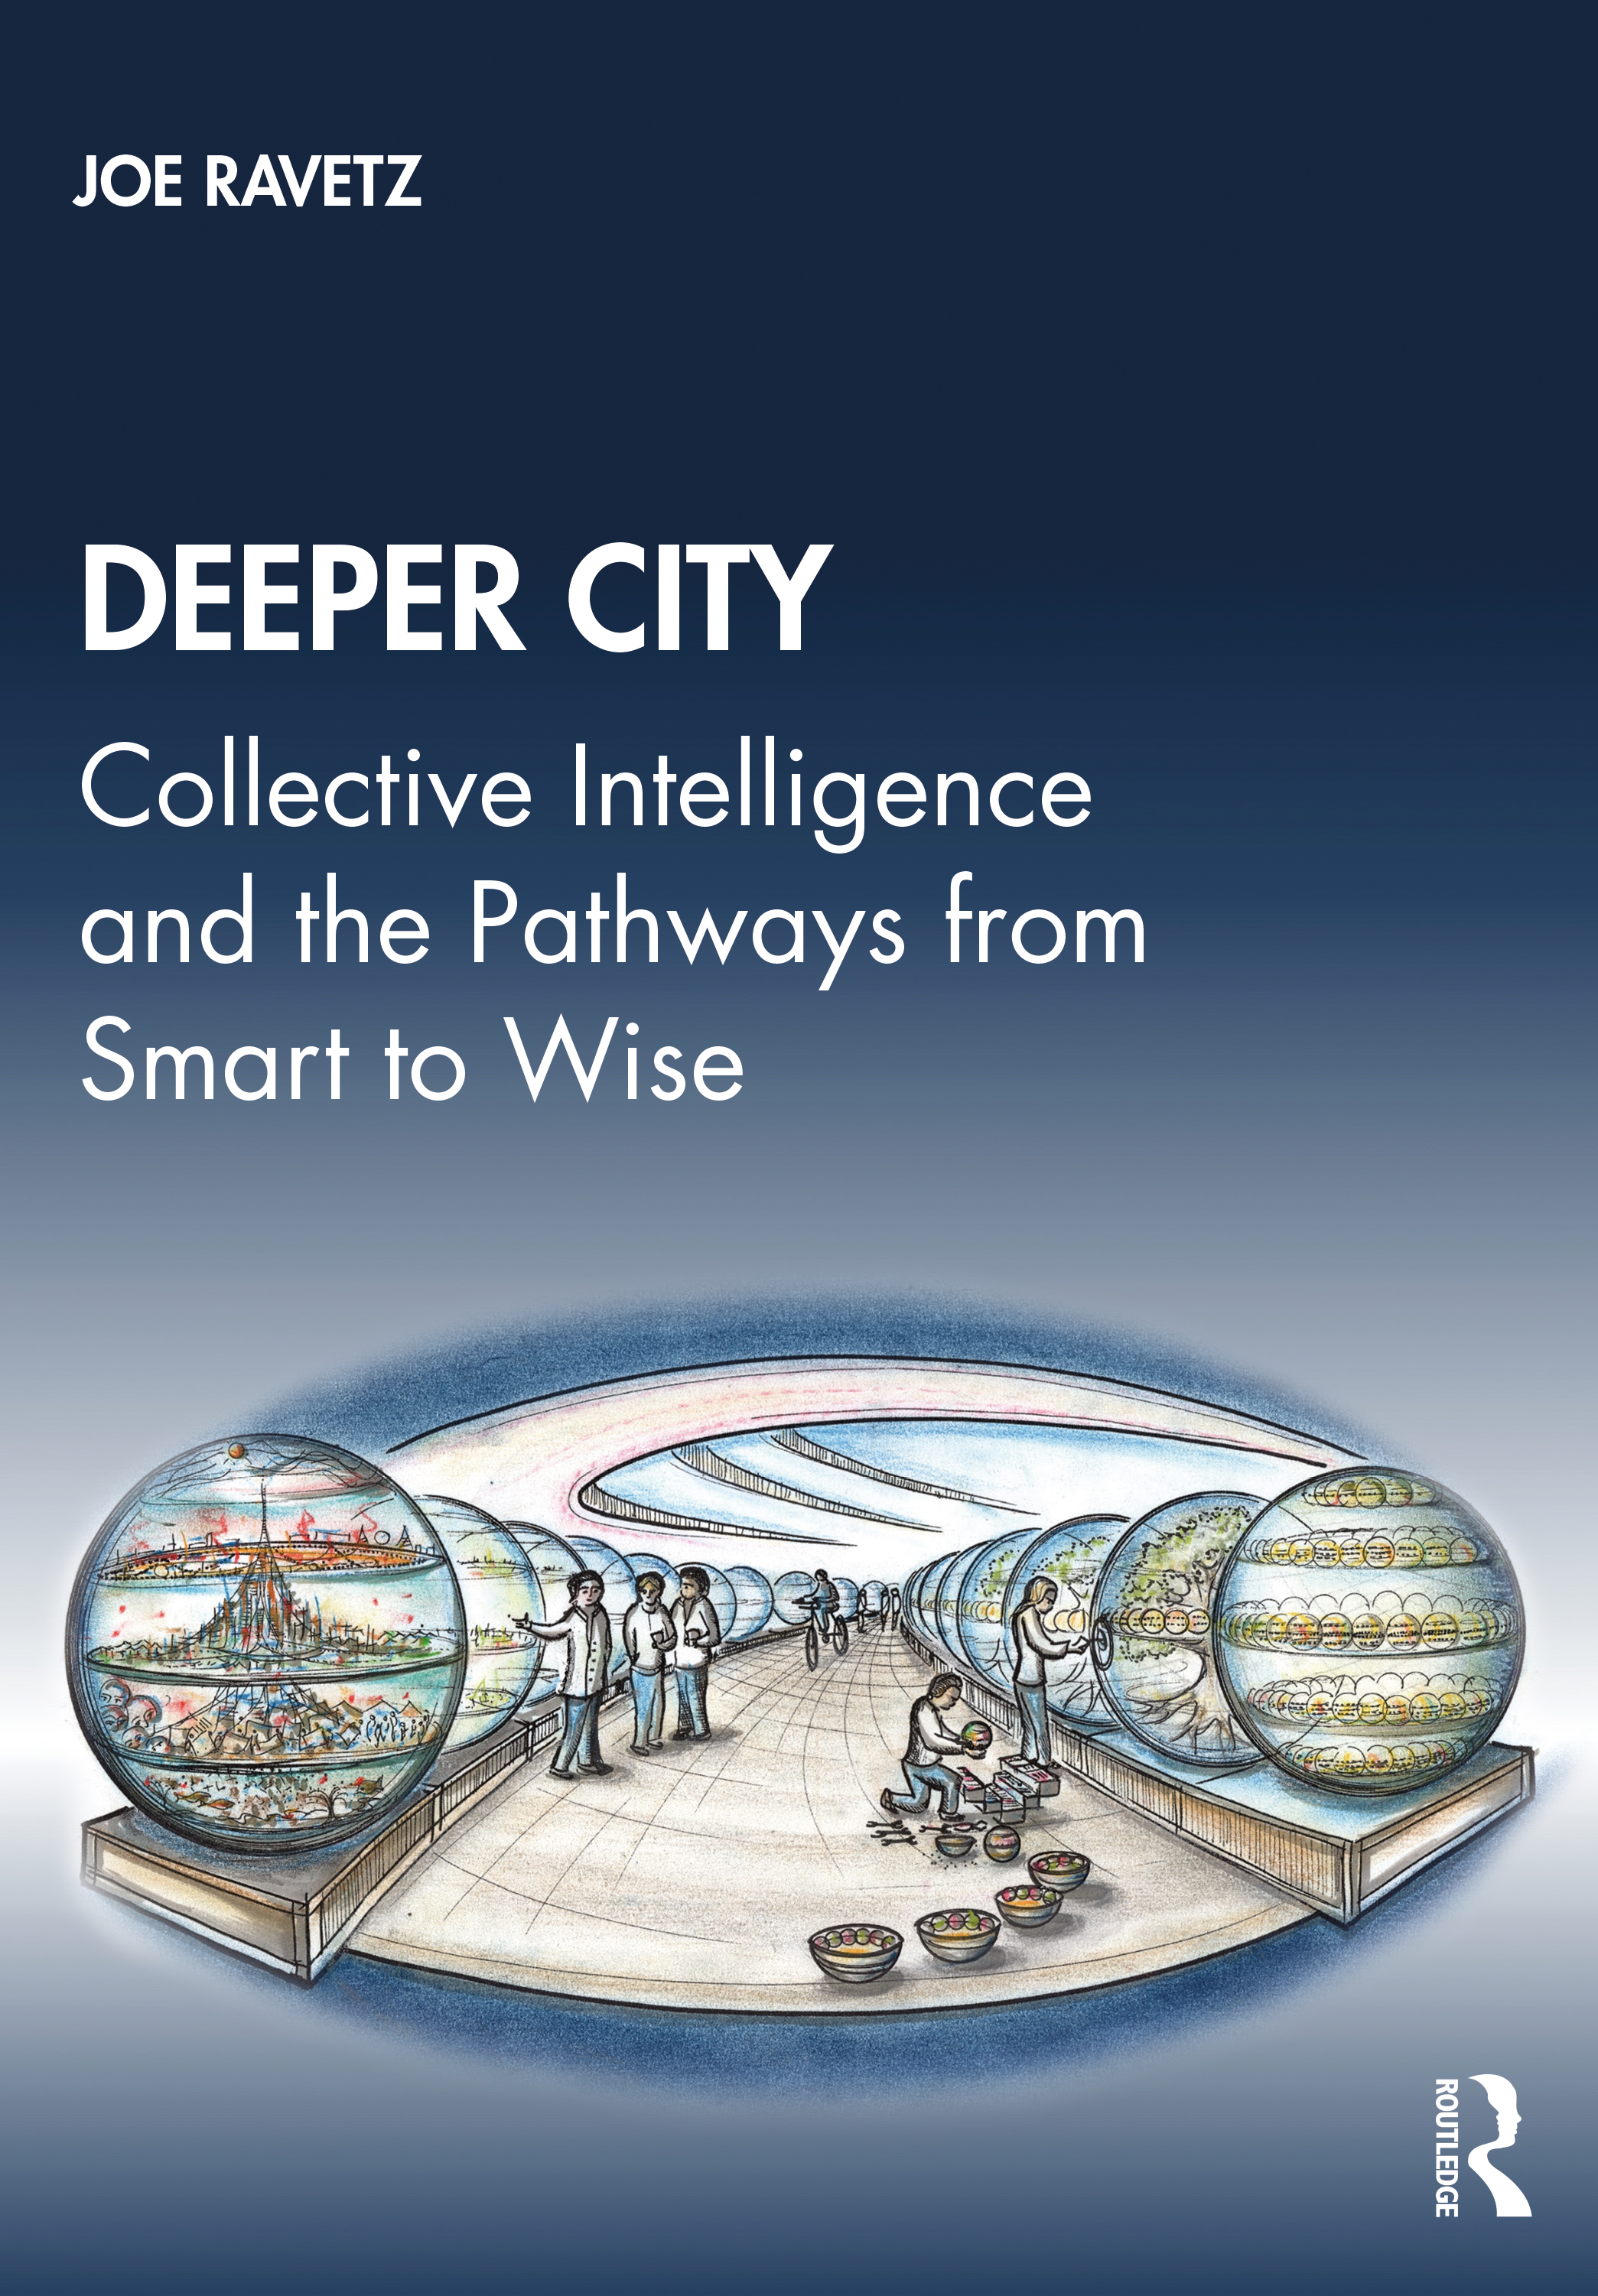 Deeper City: Collective Intelligence and the Pathways from Smart to Wise book cover